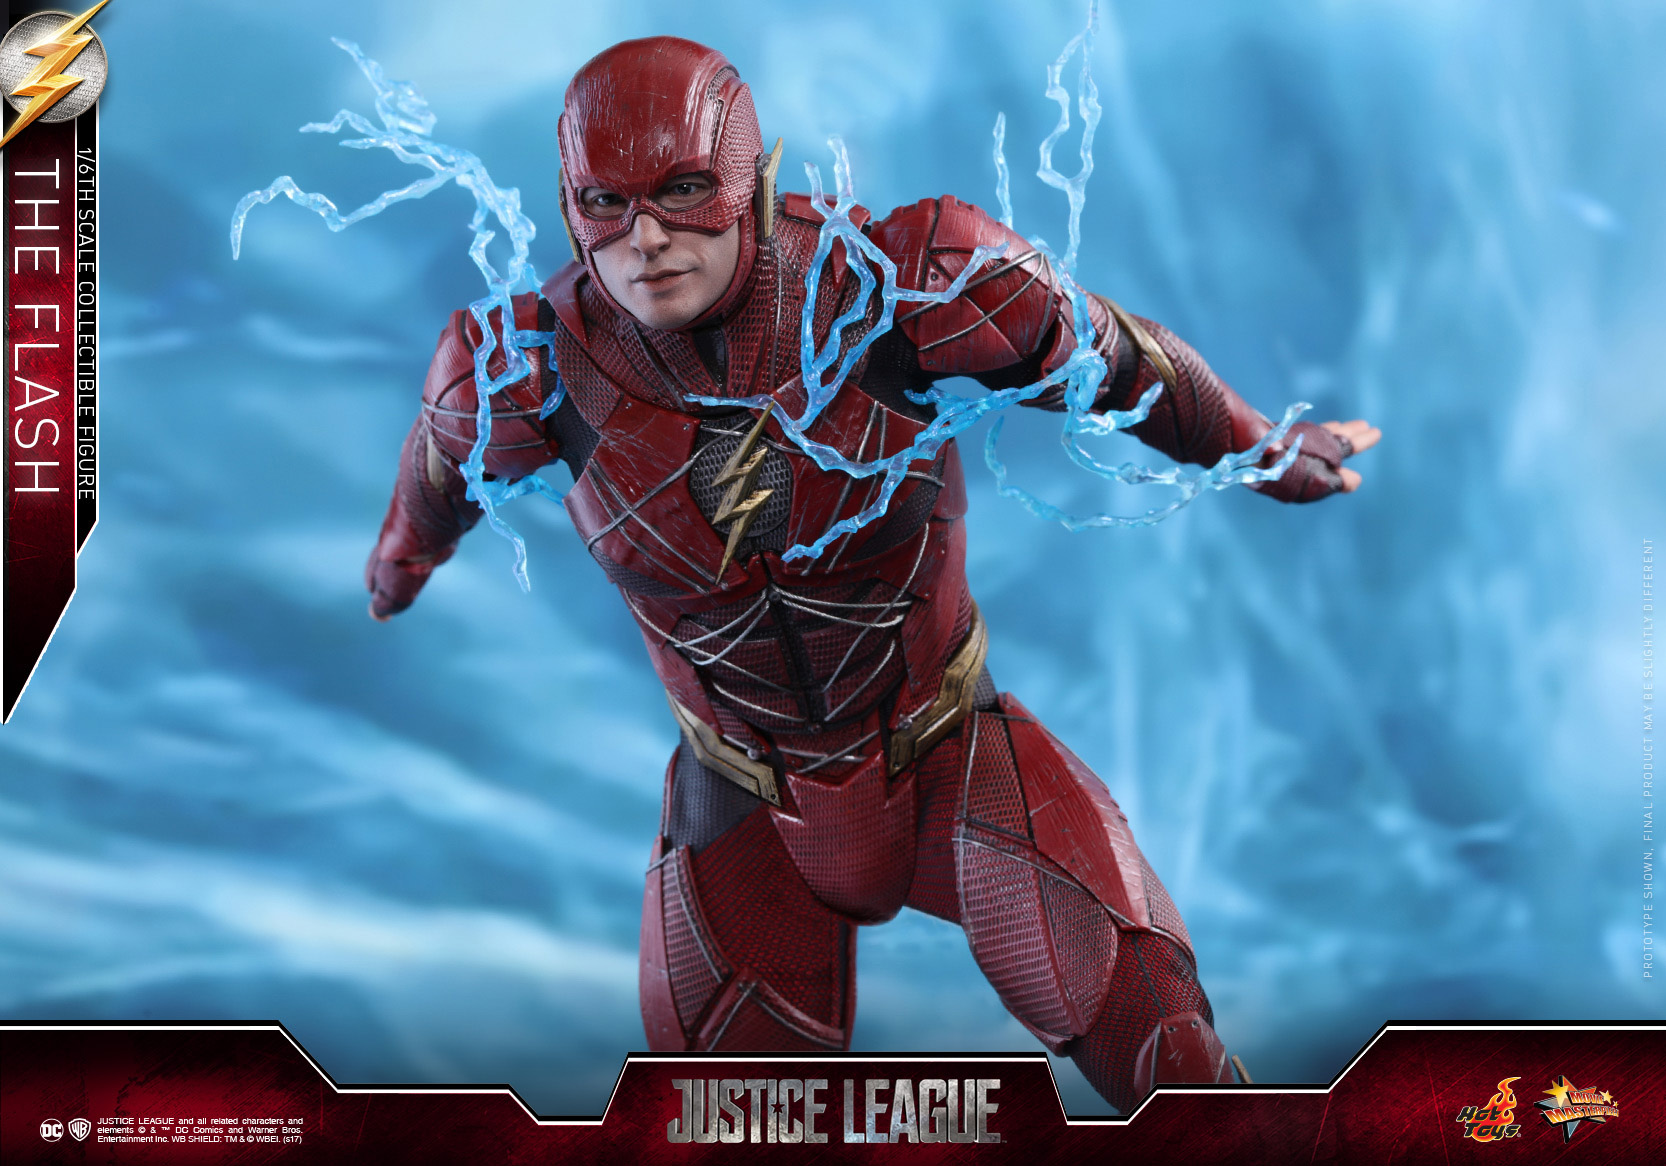 Hot Toys - Justice League - The Flash Collectible Figure_PR11.jpg